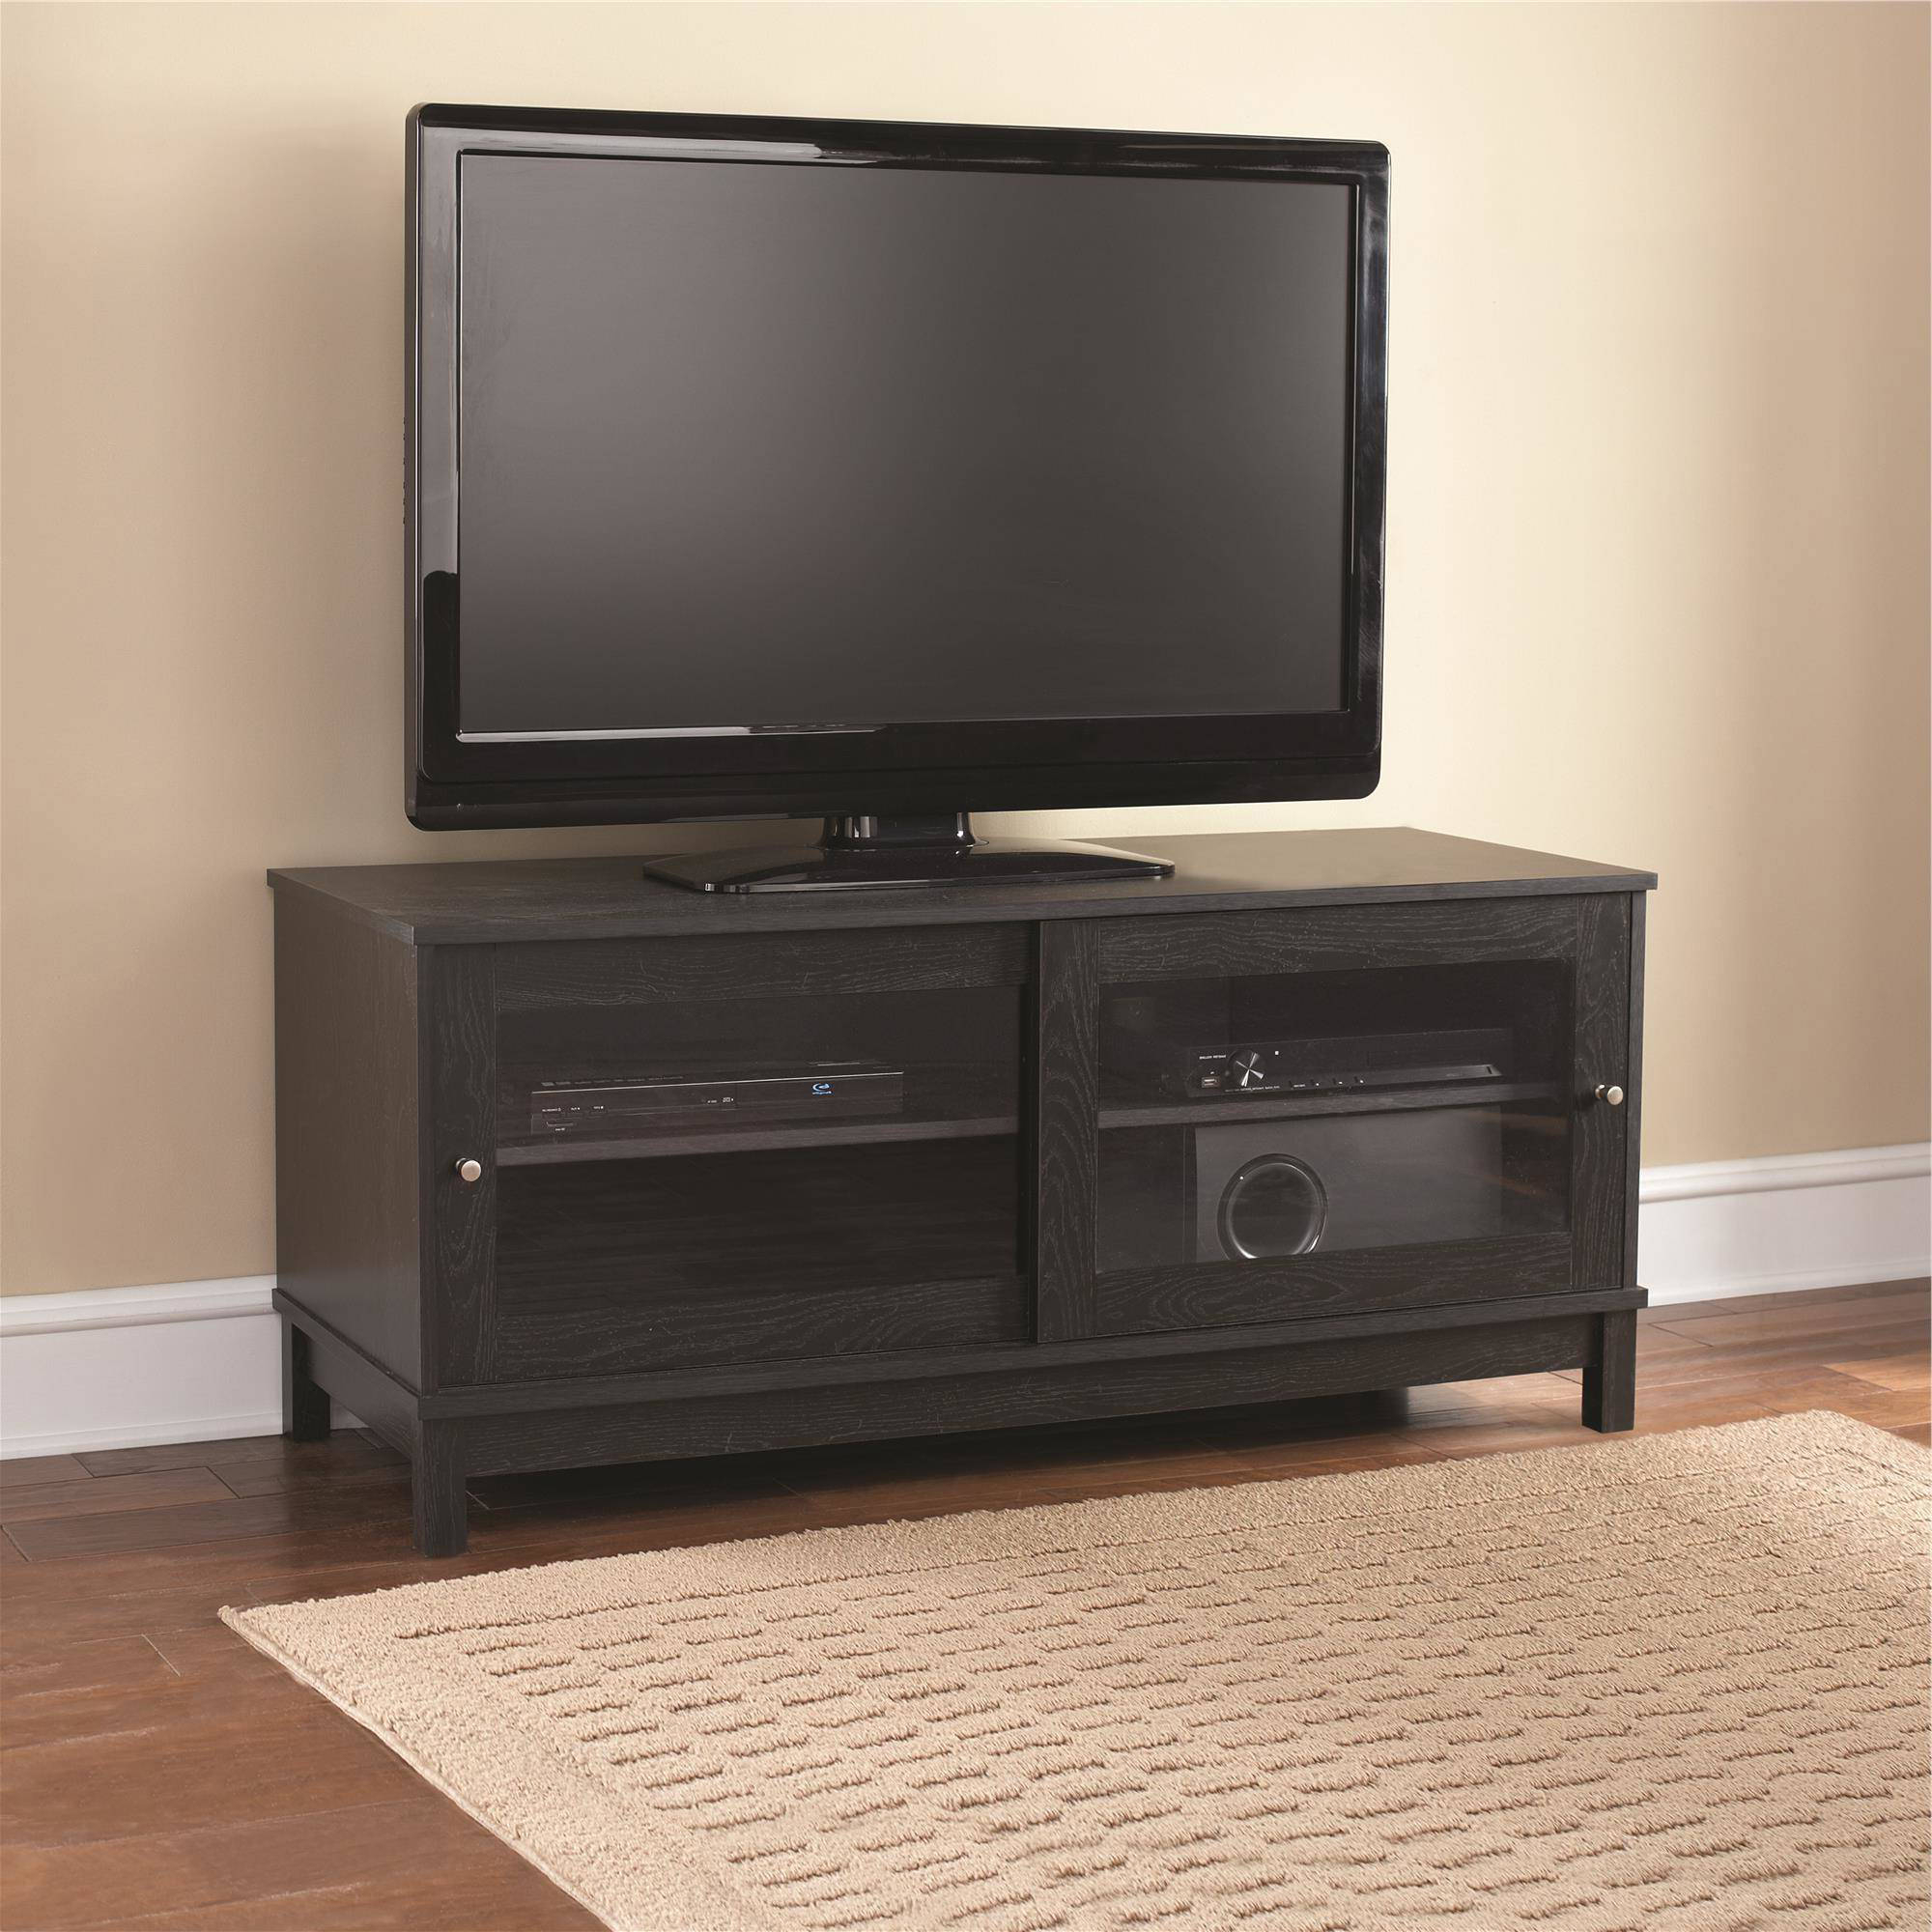 """Best And Newest Mainstays 55"""" Tv Stand With Sliding Glass Doors, Multiple Colors Within Wooden Tv Stands For Flat Screens (View 16 of 20)"""